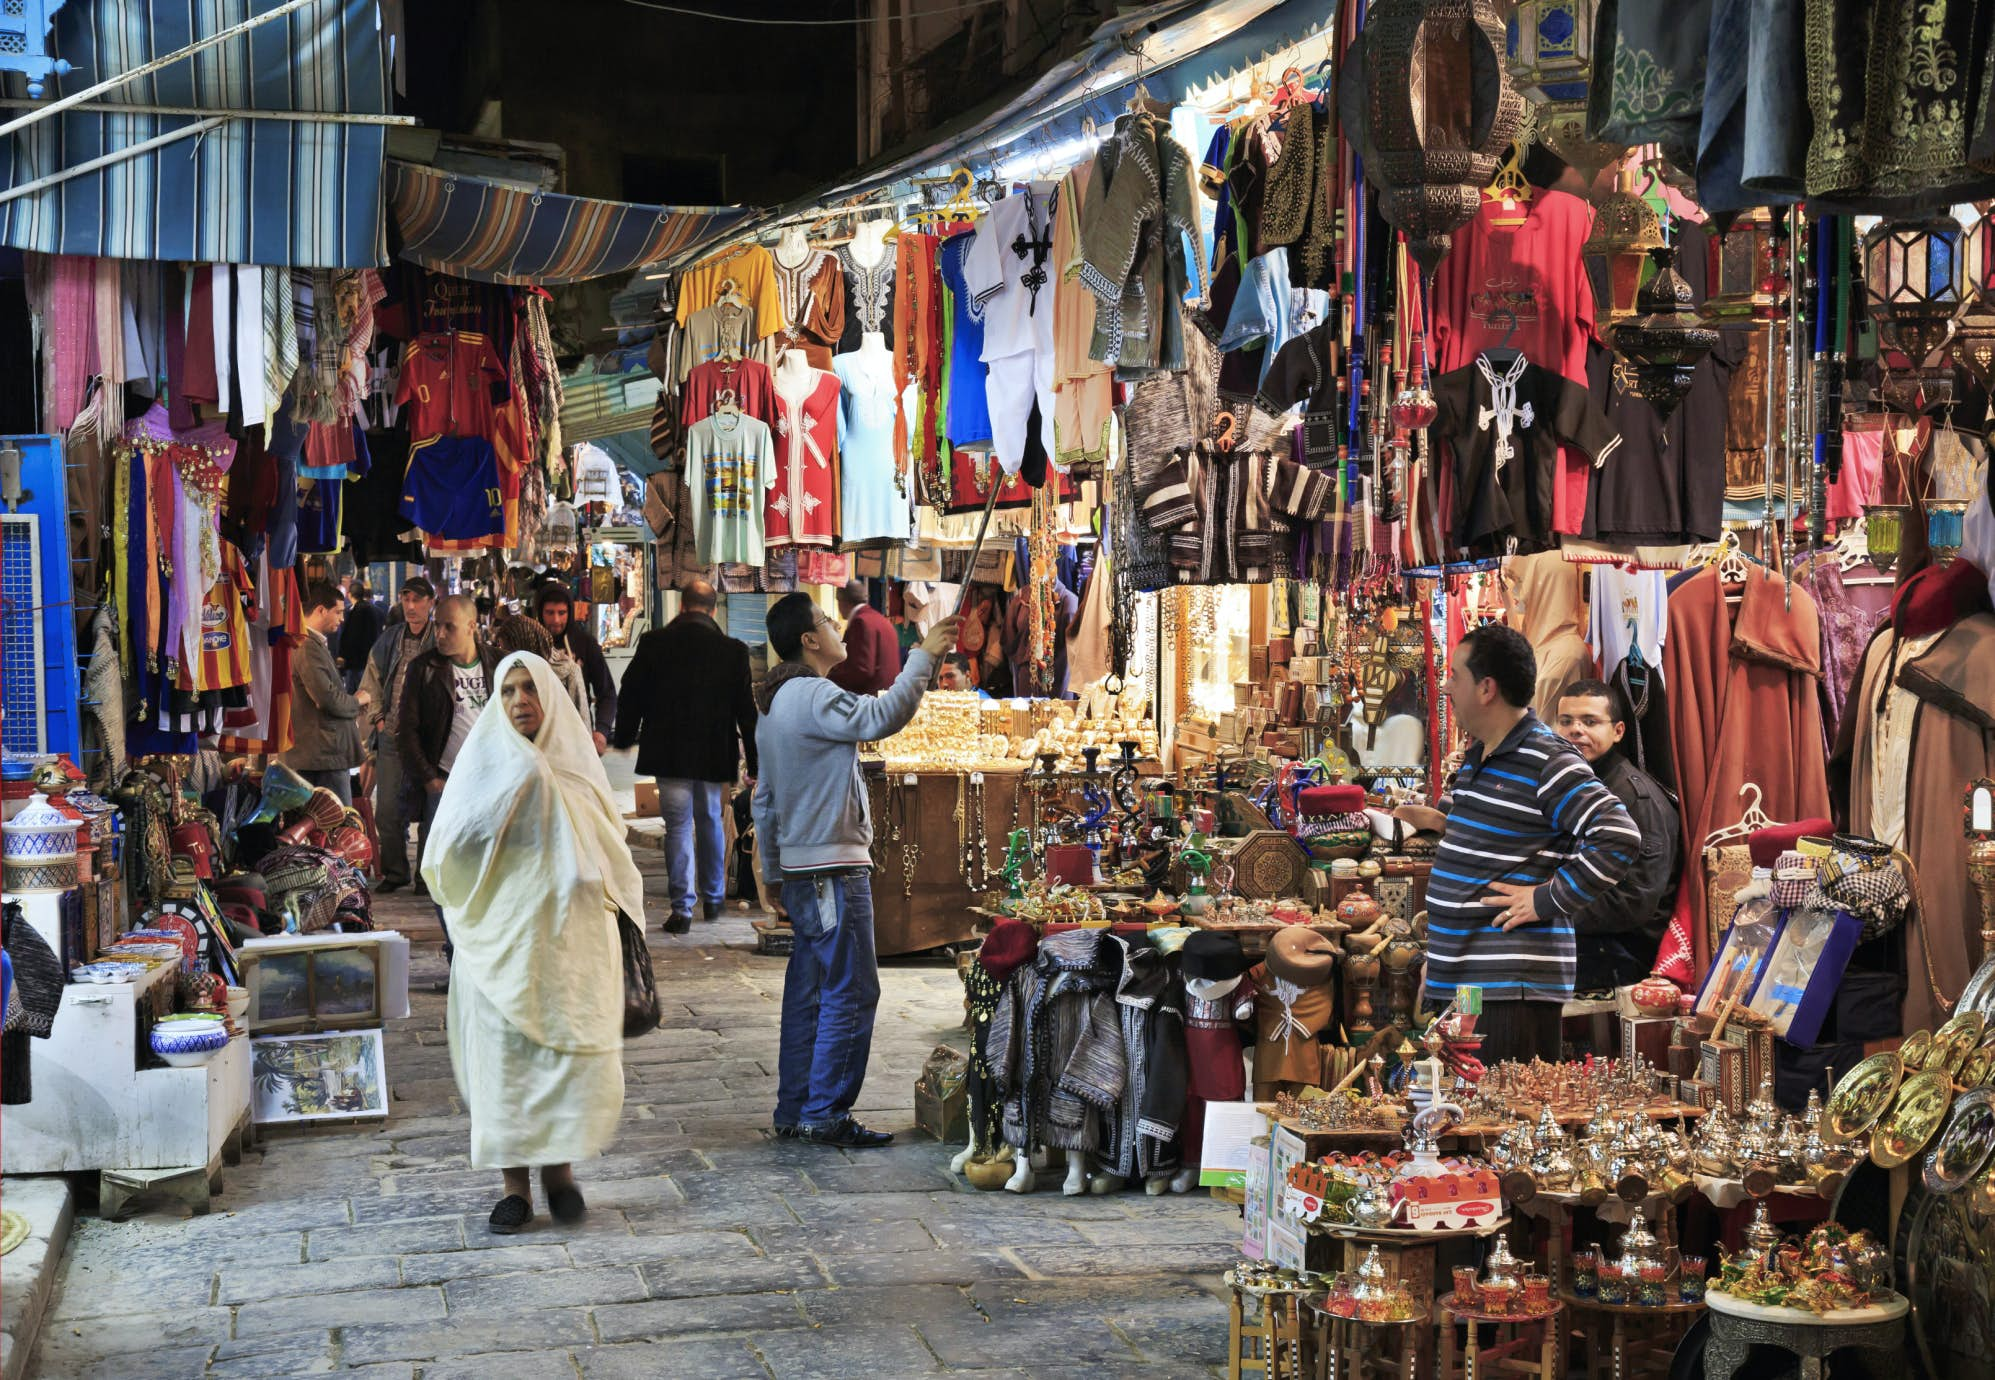 Medina | Tunis, Tunisia Attractions - Lonely Planet